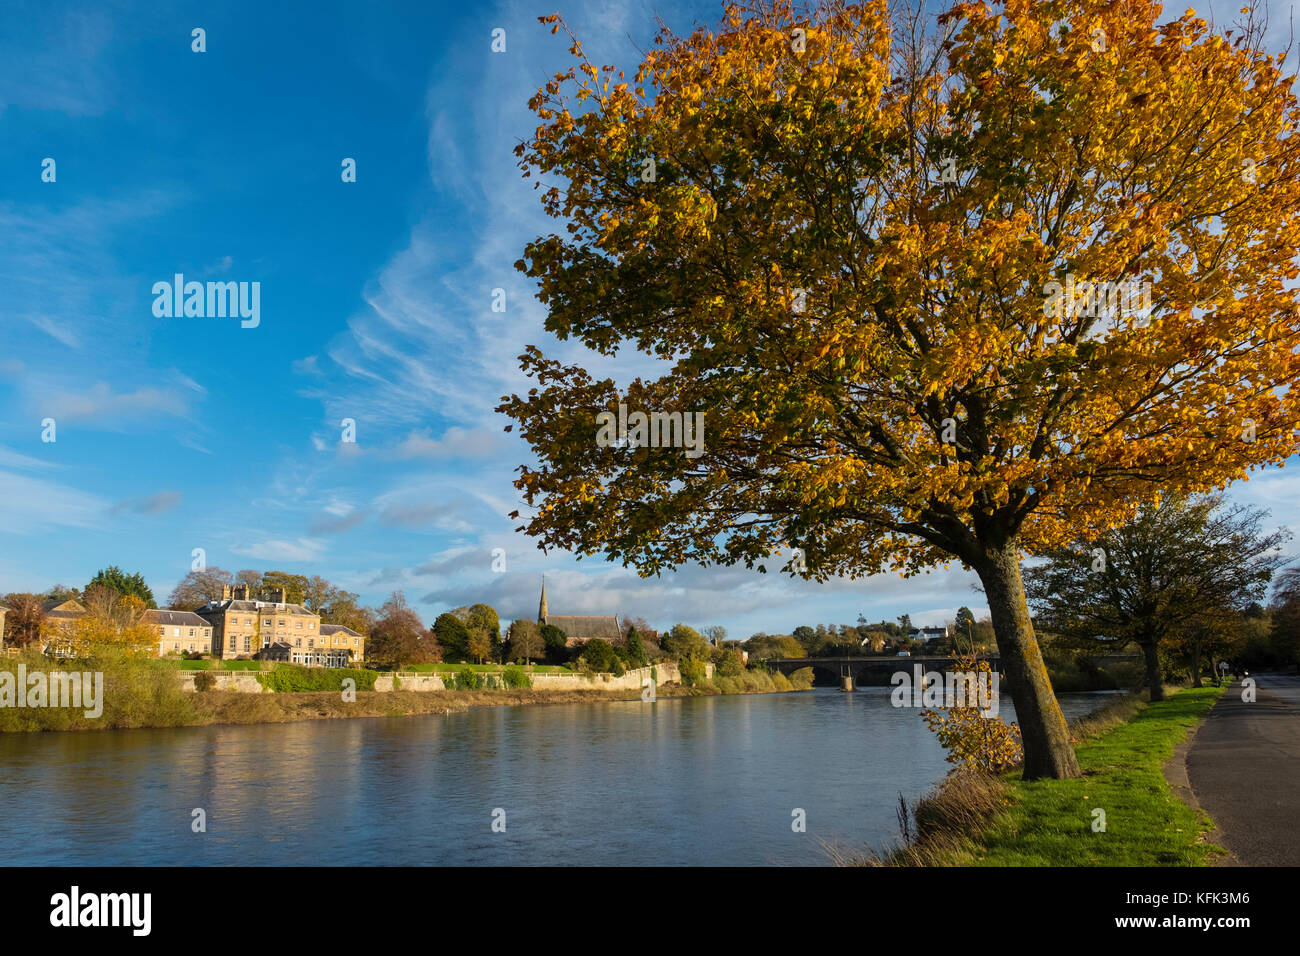 View of River Tweed in Kelso in the Scottish Borders, Scotland, United Kingdom - Stock Image